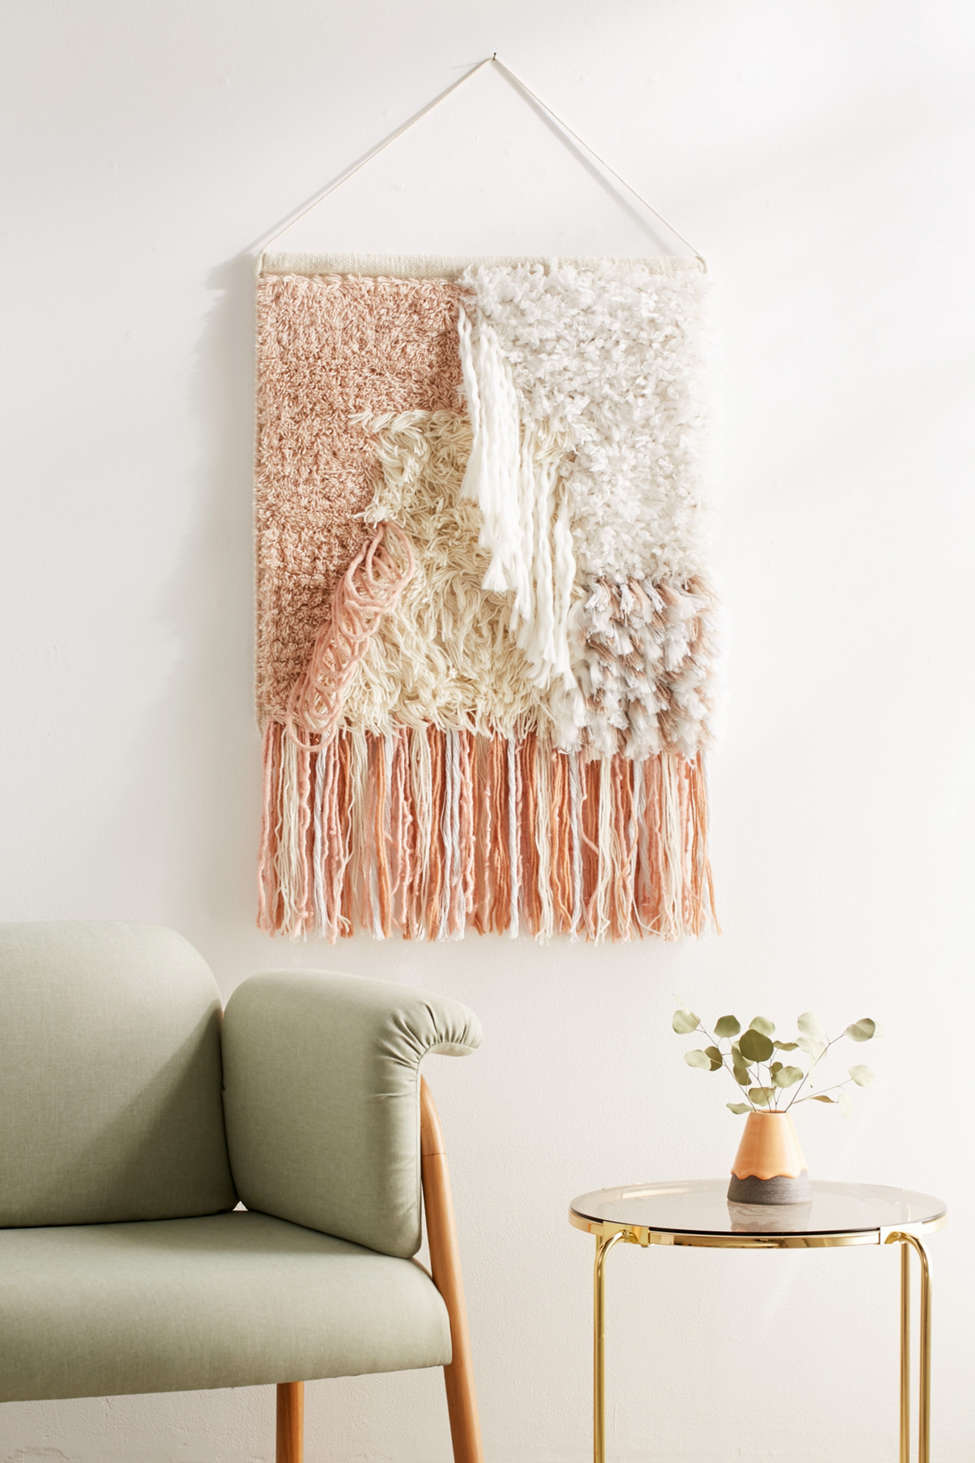 Slide View: 1: Talla Textured Wall Hanging